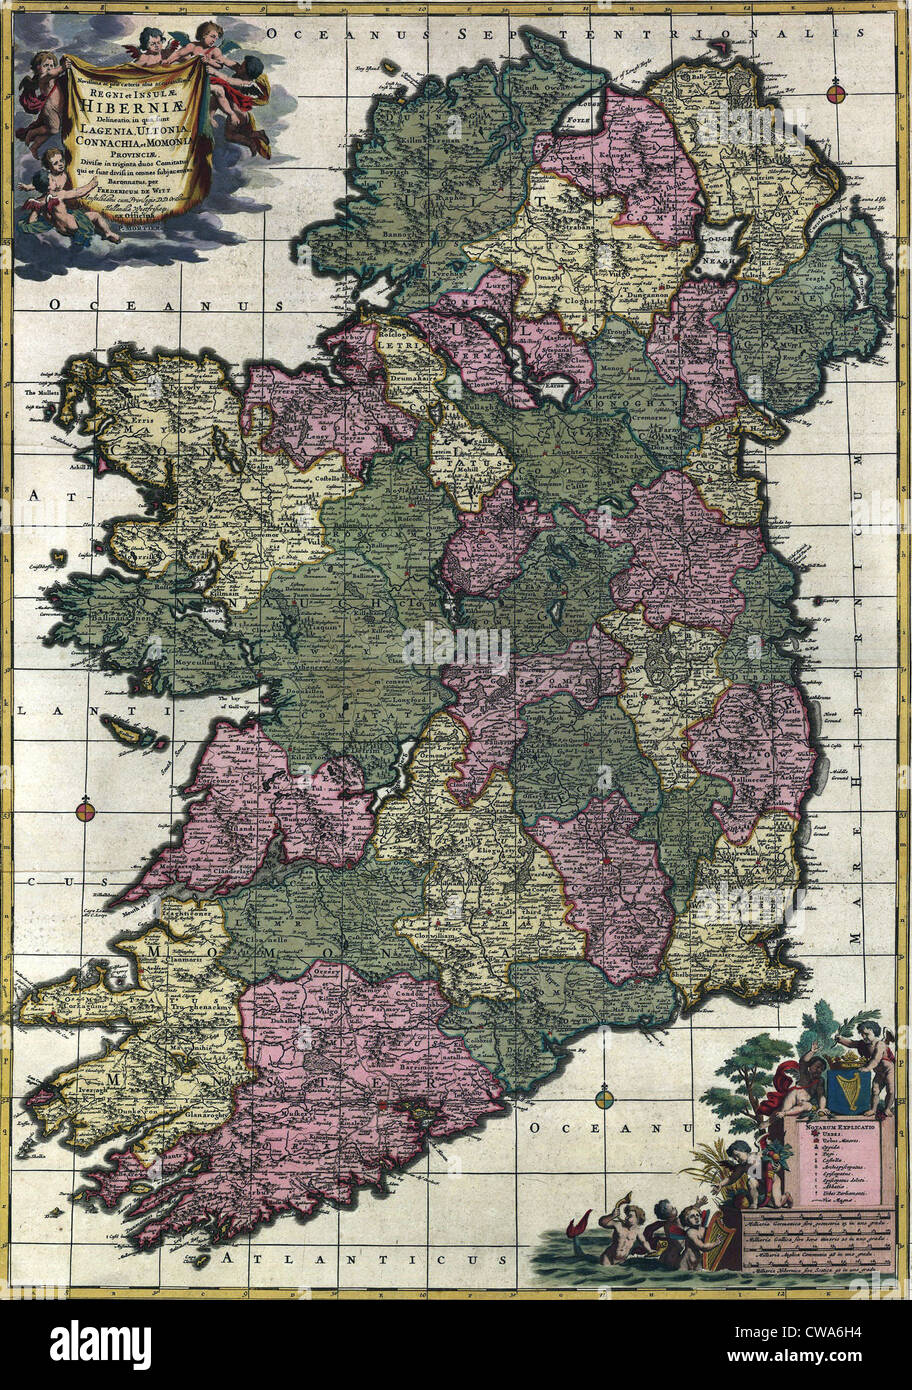 Map of Ireland from 18th century, showing counties, when all of Ireland was under British rule. - Stock Image